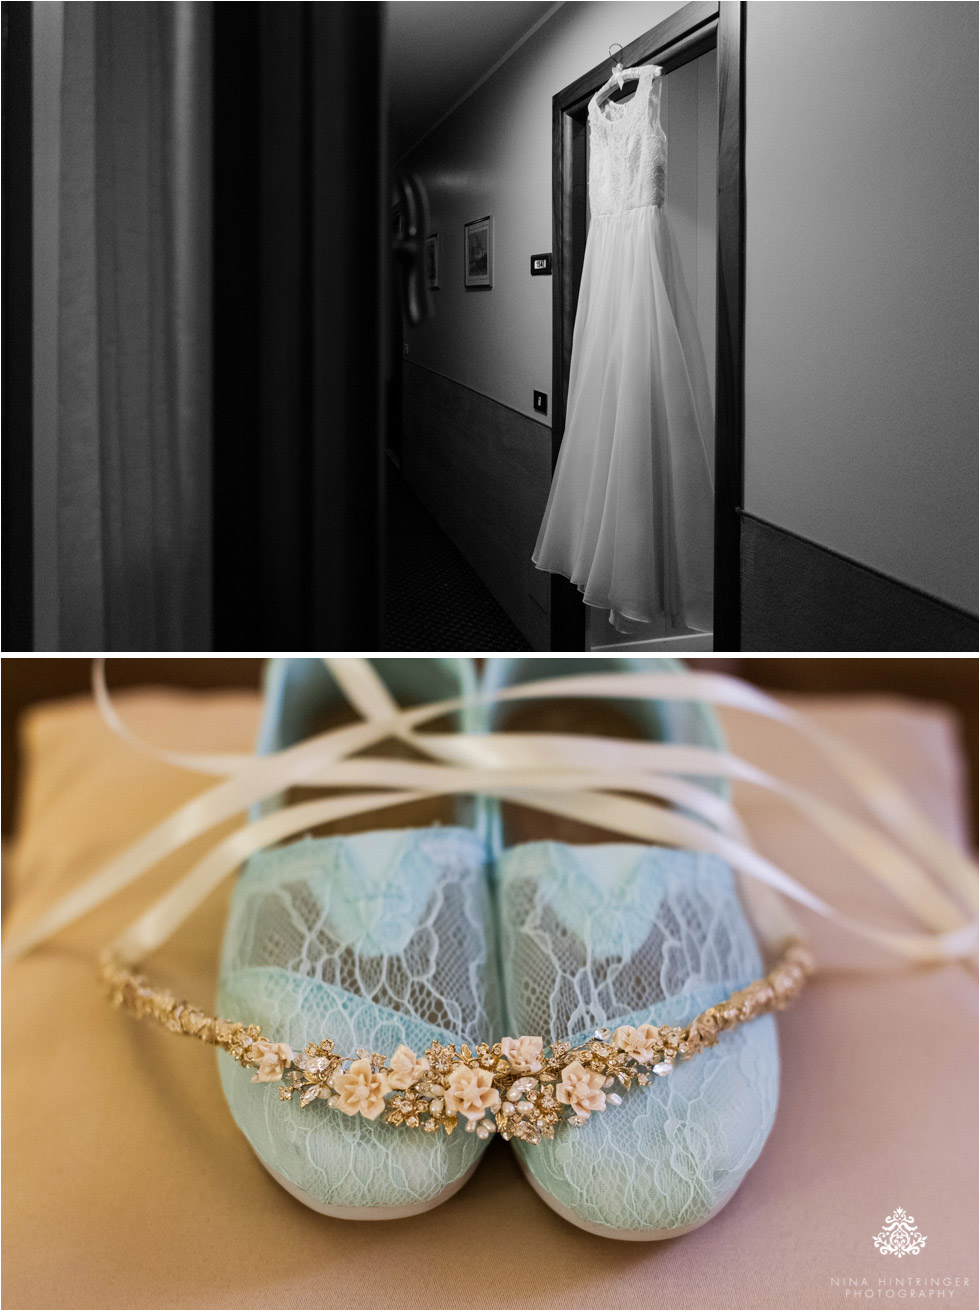 Wedding dress, shoes and jewellery of the bride during getting ready on her wedding day in Bassano del Grappa in Italy - Blog of Nina Hintringer Photography - Wedding Photography, Wedding Reportage and Destination Weddings